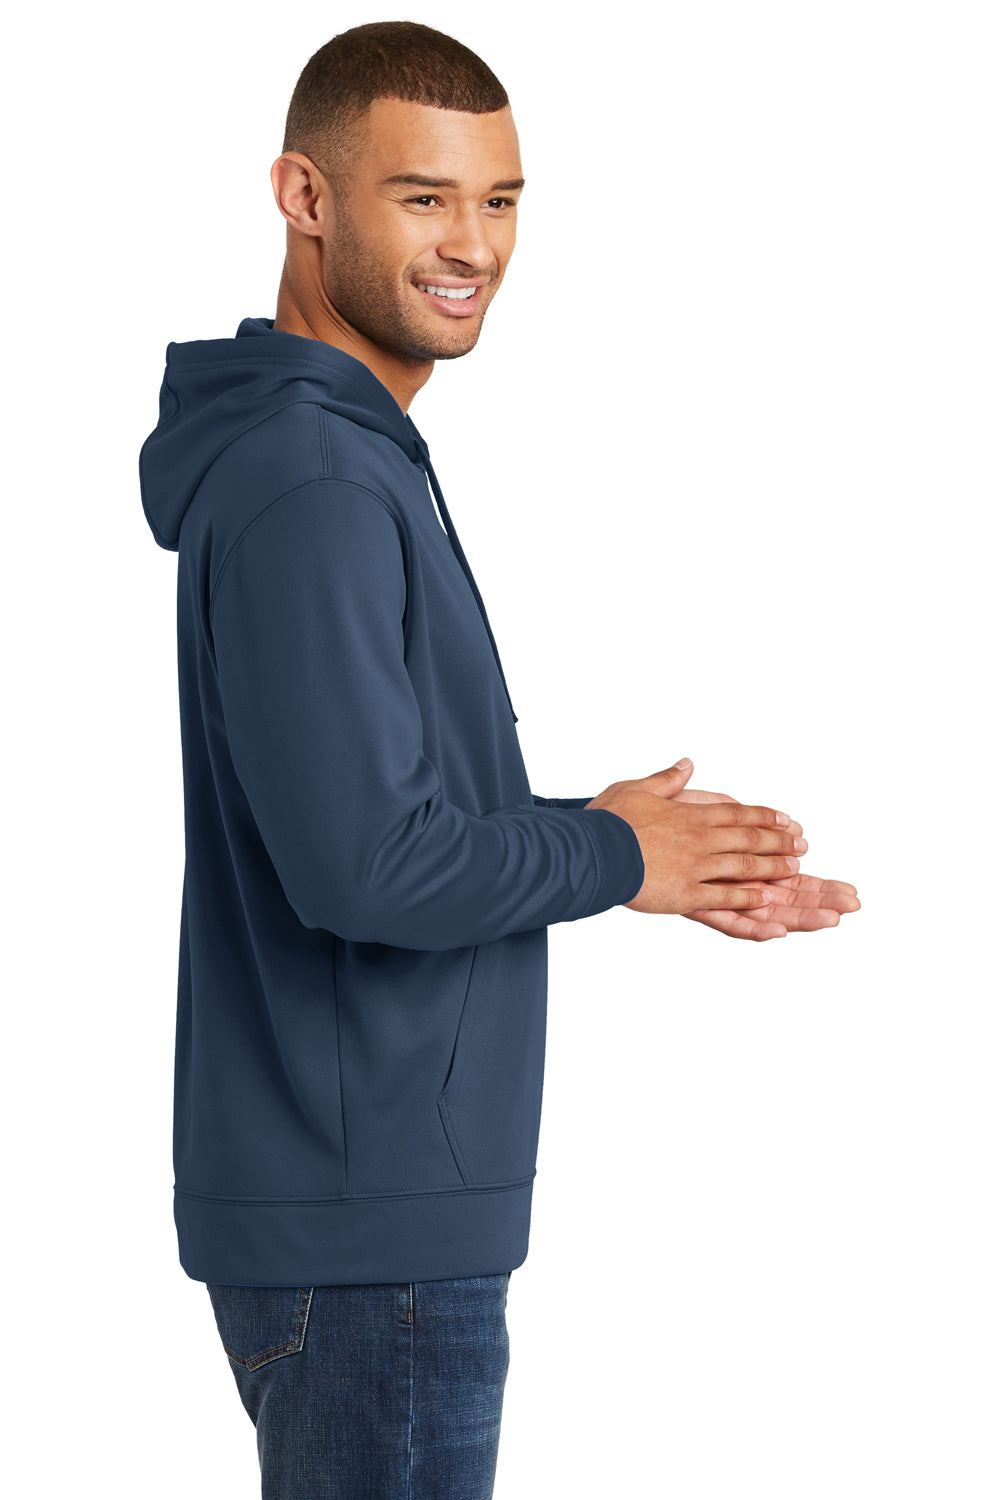 Port & Company PC590H Mens Dry Zone Performance Moisture Wicking Fleece Hooded Sweatshirt Hoodie Navy Blue Side